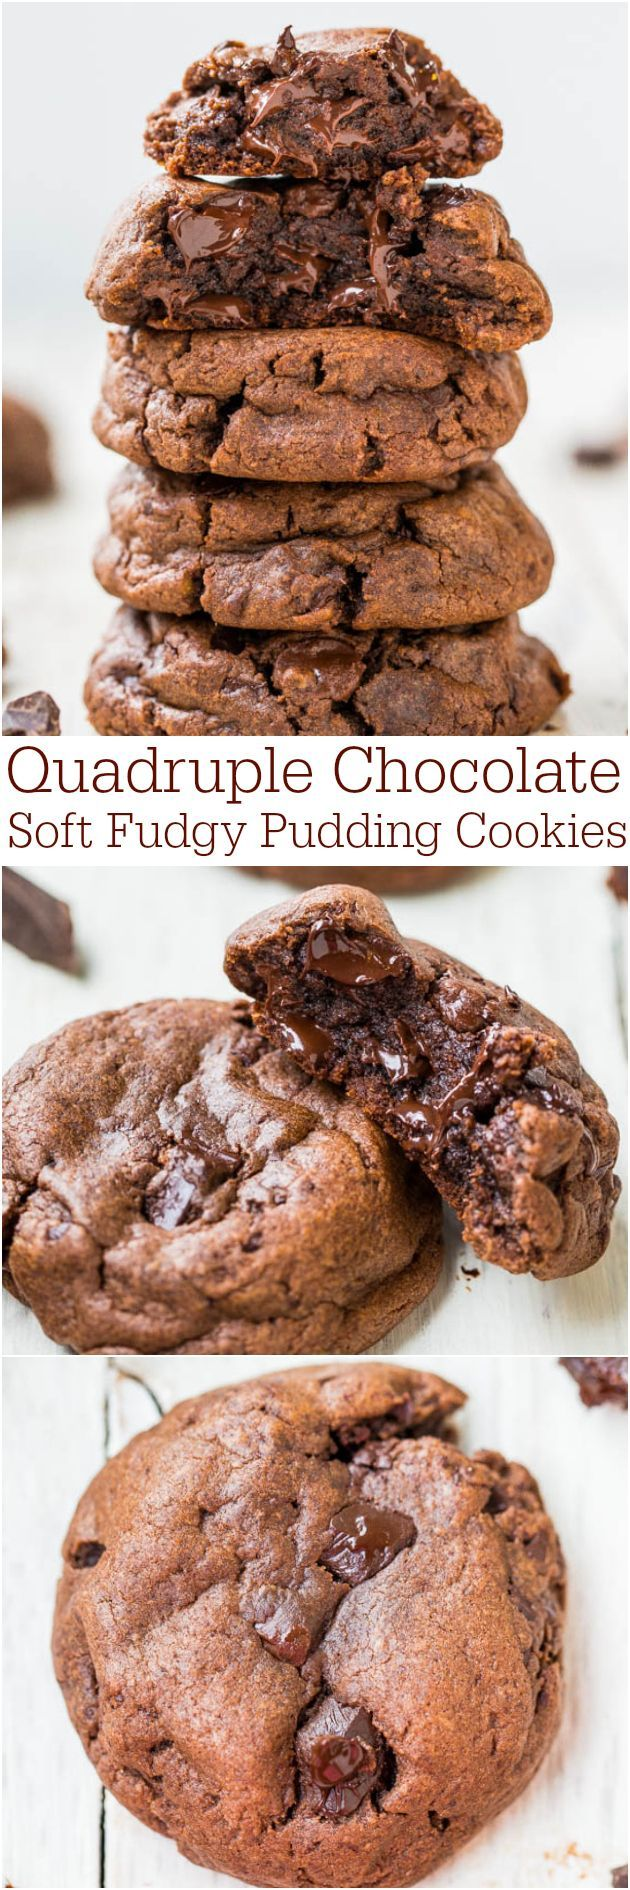 Quadruple Chocolate Pudding Cookies — These EASY pudding cookies are packed with cocoa powder, chocolate chips and chunks, and chocolate pudding mix to deliver serious chocolate flavor x4!!